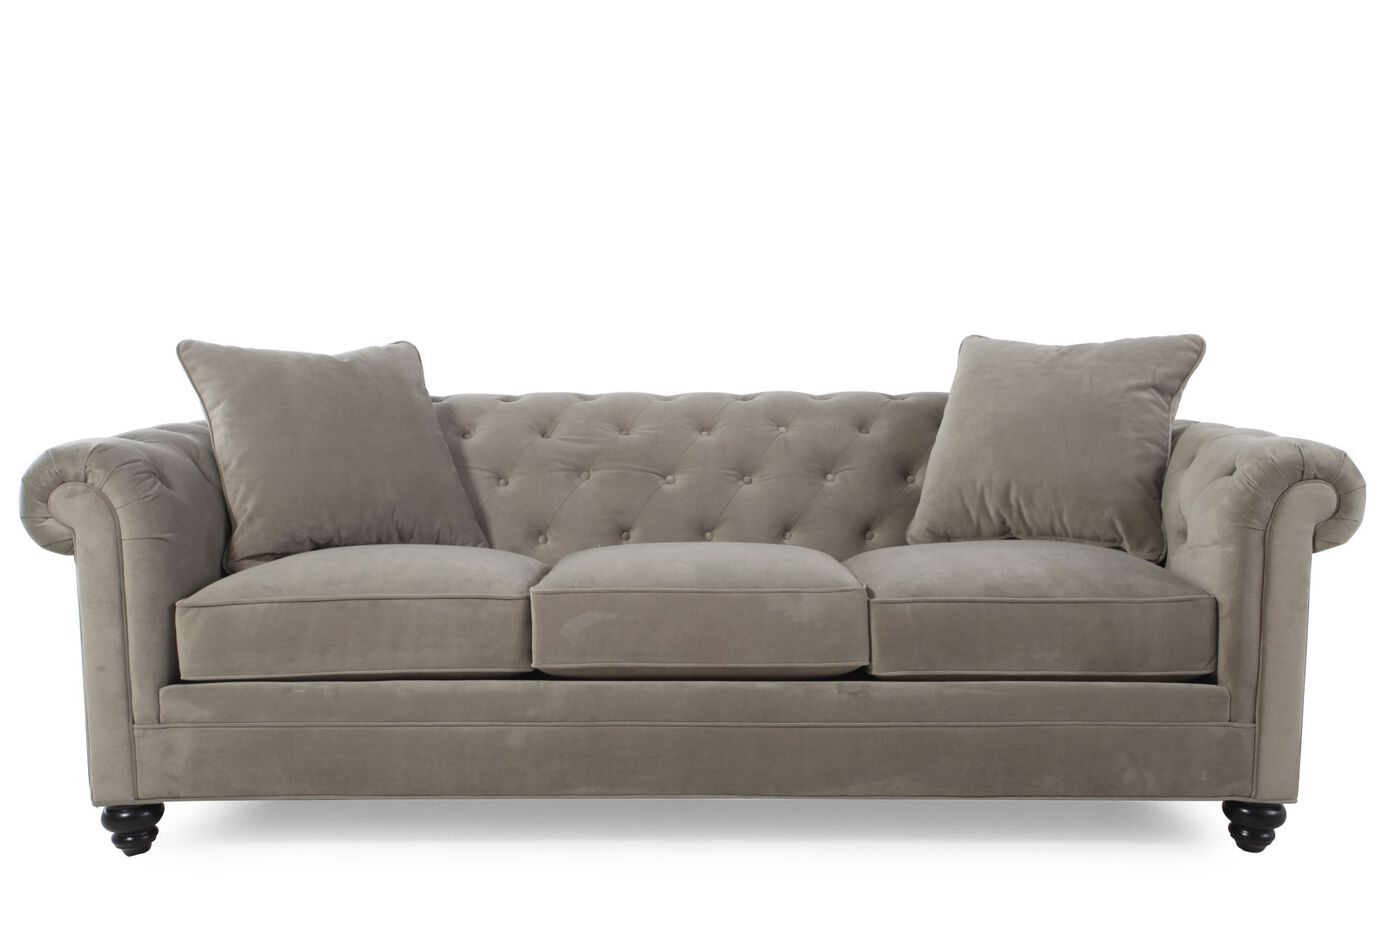 contemporary button tufted 92 sofa in gray mathis. Black Bedroom Furniture Sets. Home Design Ideas